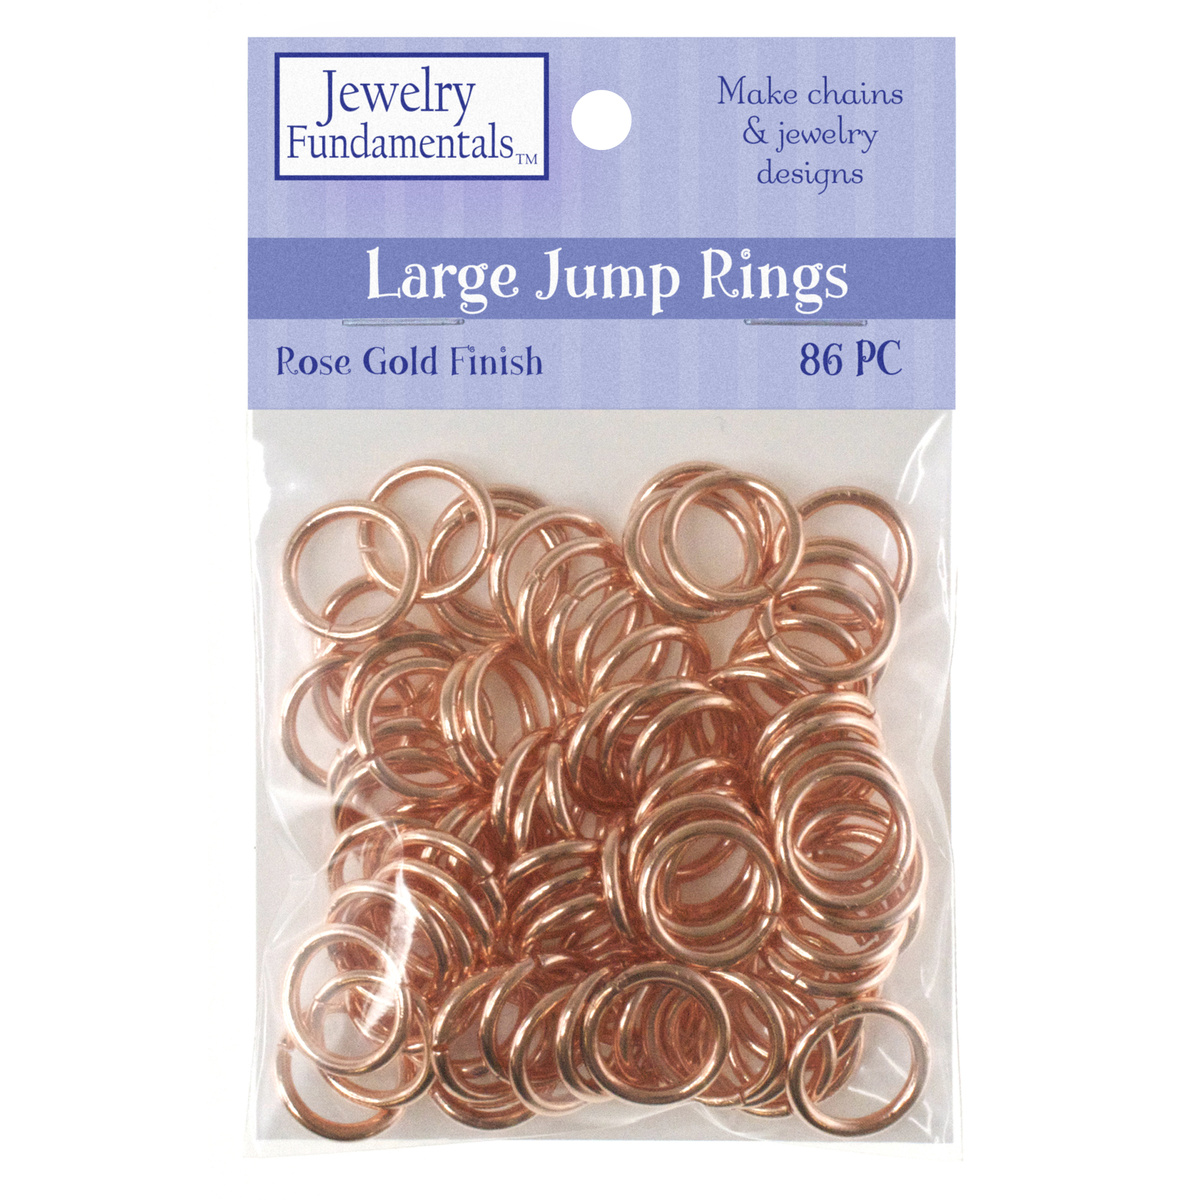 Jewelry Fundamentals Large Jump Rings-Rose Gold Finish